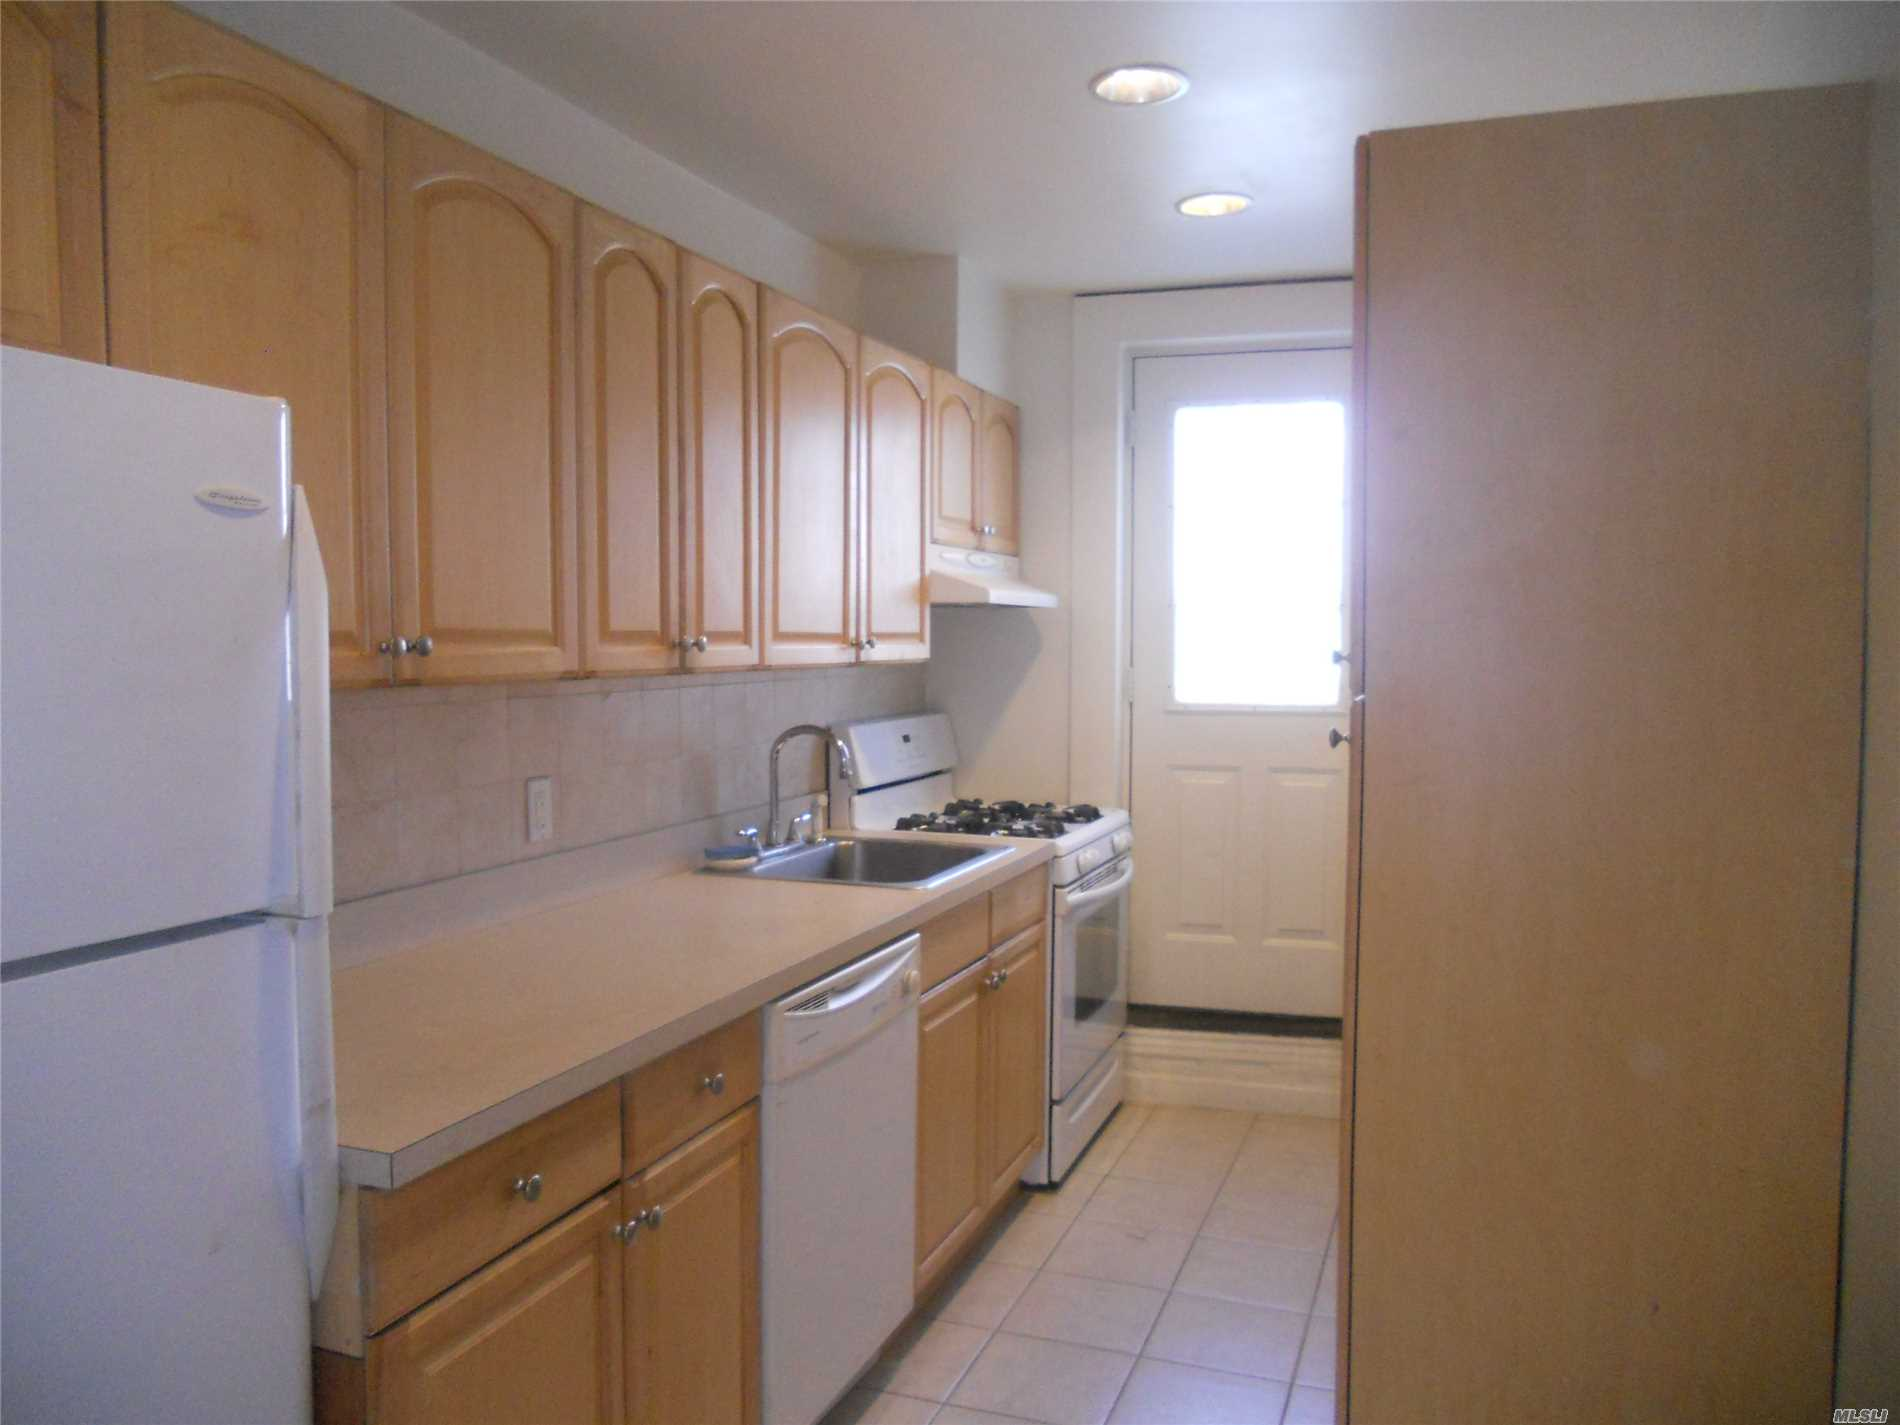 Bayside 2 Bedroom Located On 48th Ave Near Bell Blvd. Wood Floors, Dishwasher And Balcony. Near All Buses, Lirr, Restaurants, Shopping, Owner Will Consider A Small Dog Or Cat. School District 26